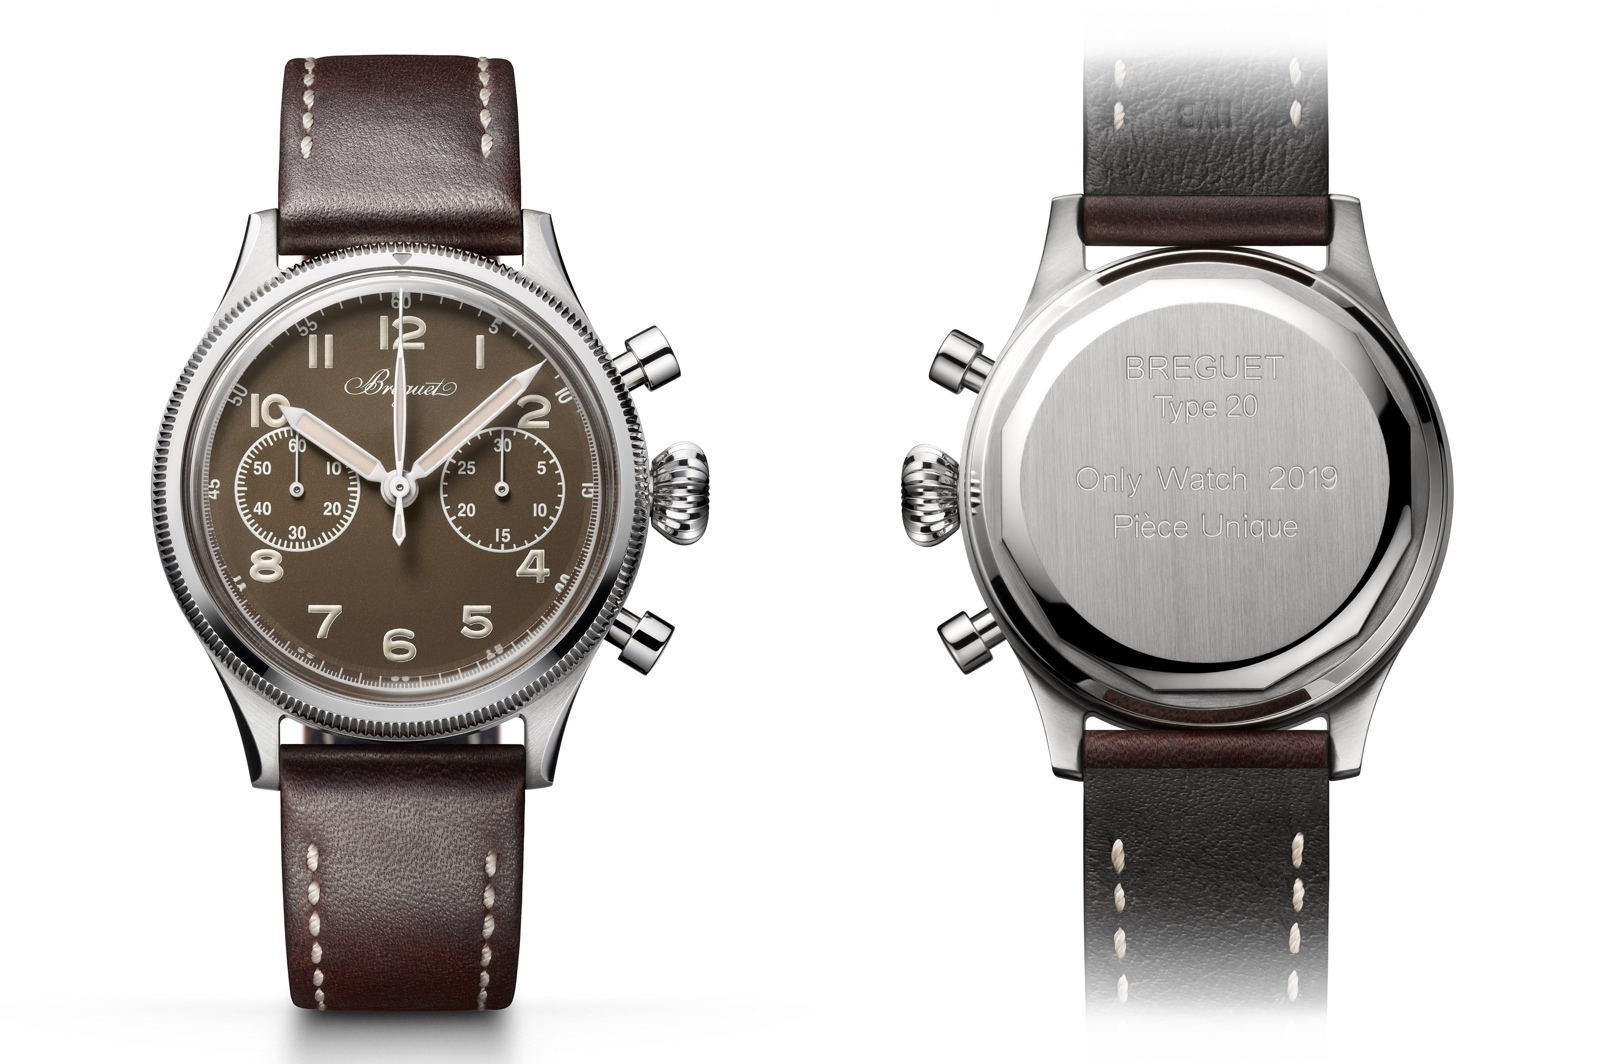 Breguet Type 20 Only Watch 2019 - front-back